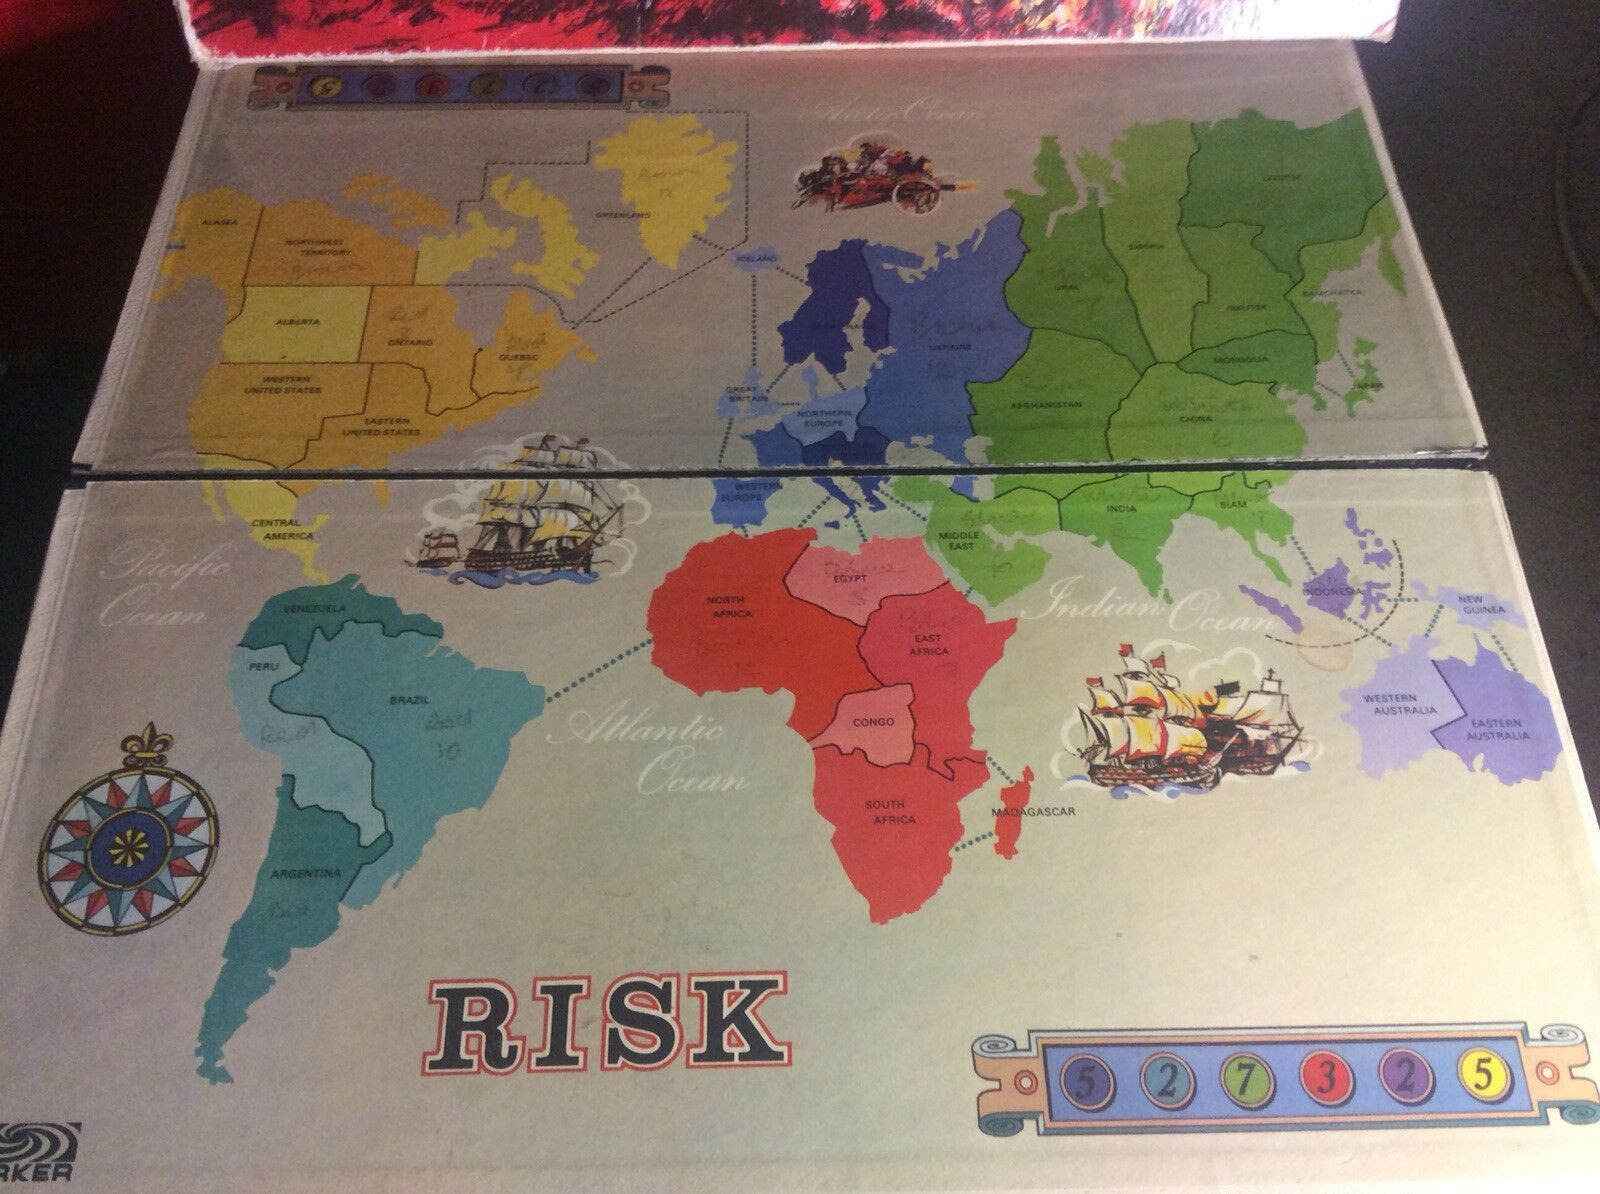 Vintage Parker Risk 1960's world strategy strategy strategy board game - Complete 0d6f3f